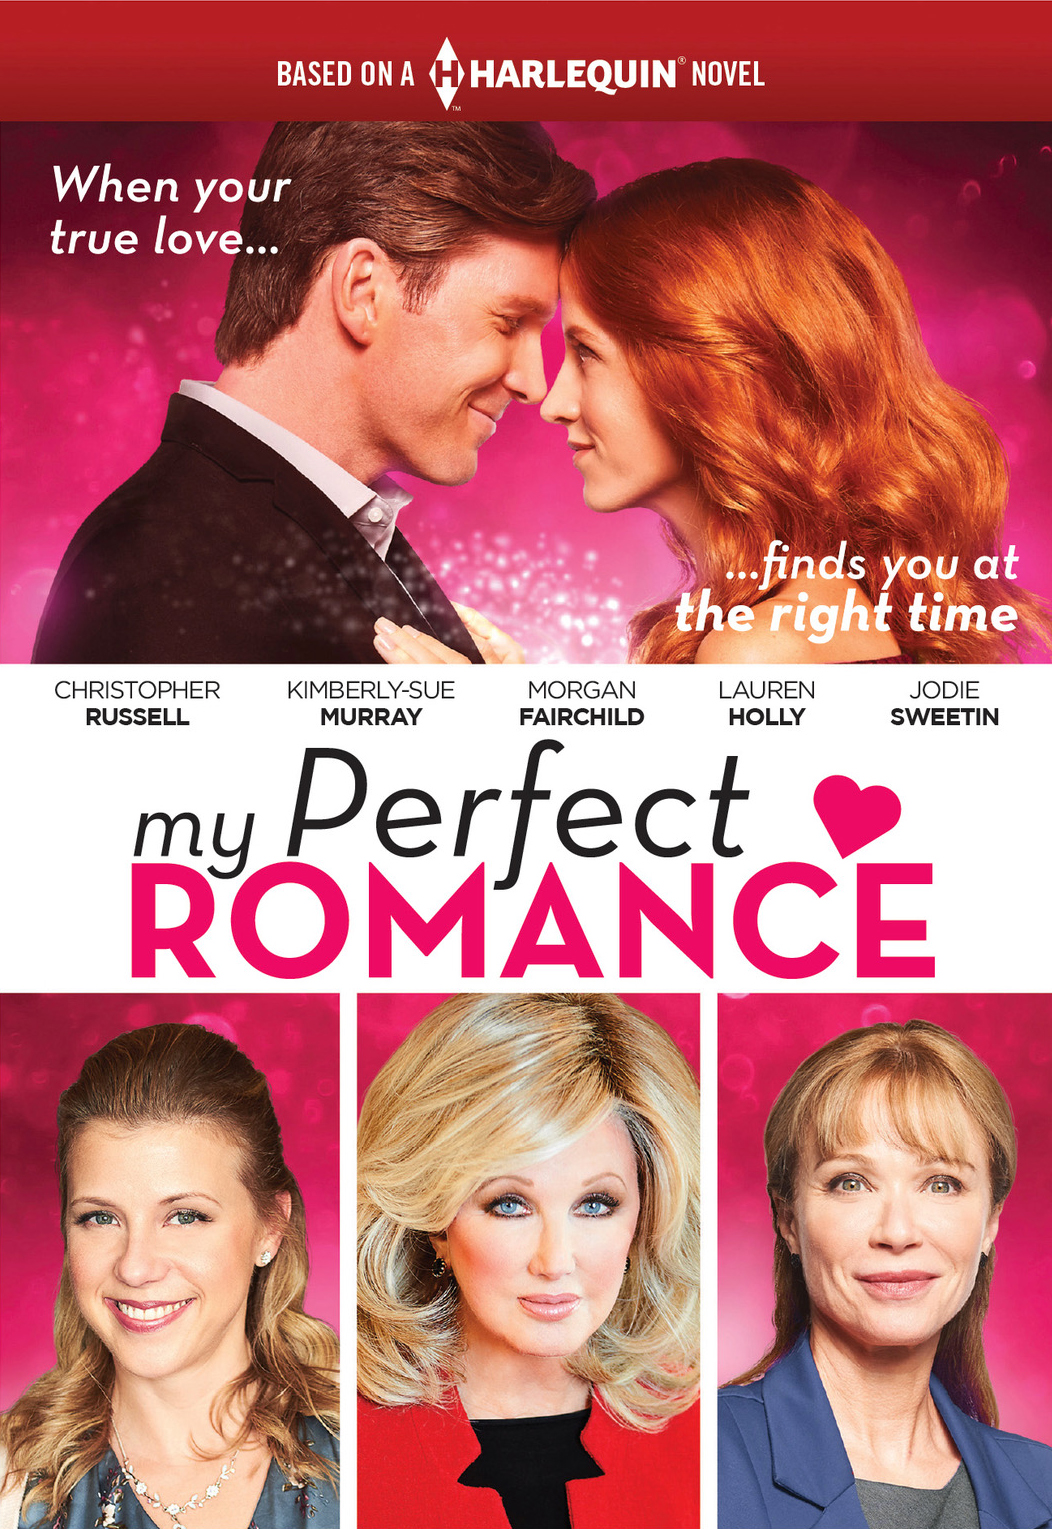 My Perfect Romance (TV Movie 2018) - IMDb